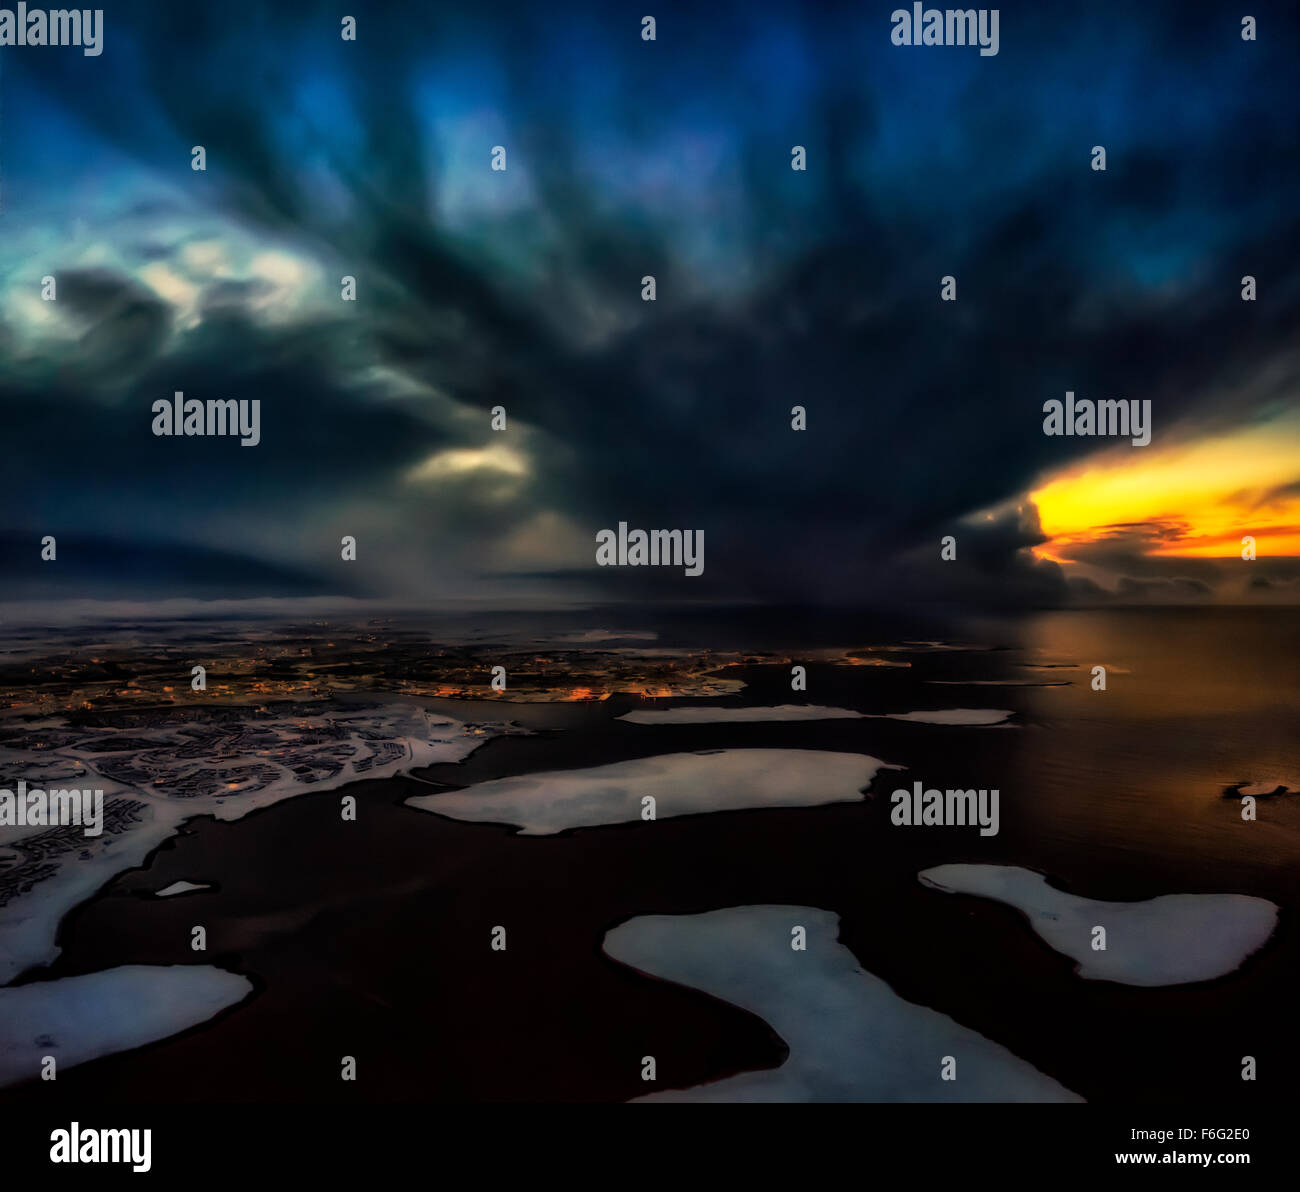 Dramatic skies over Reykjavik, Iceland Digital composite. - Stock Image